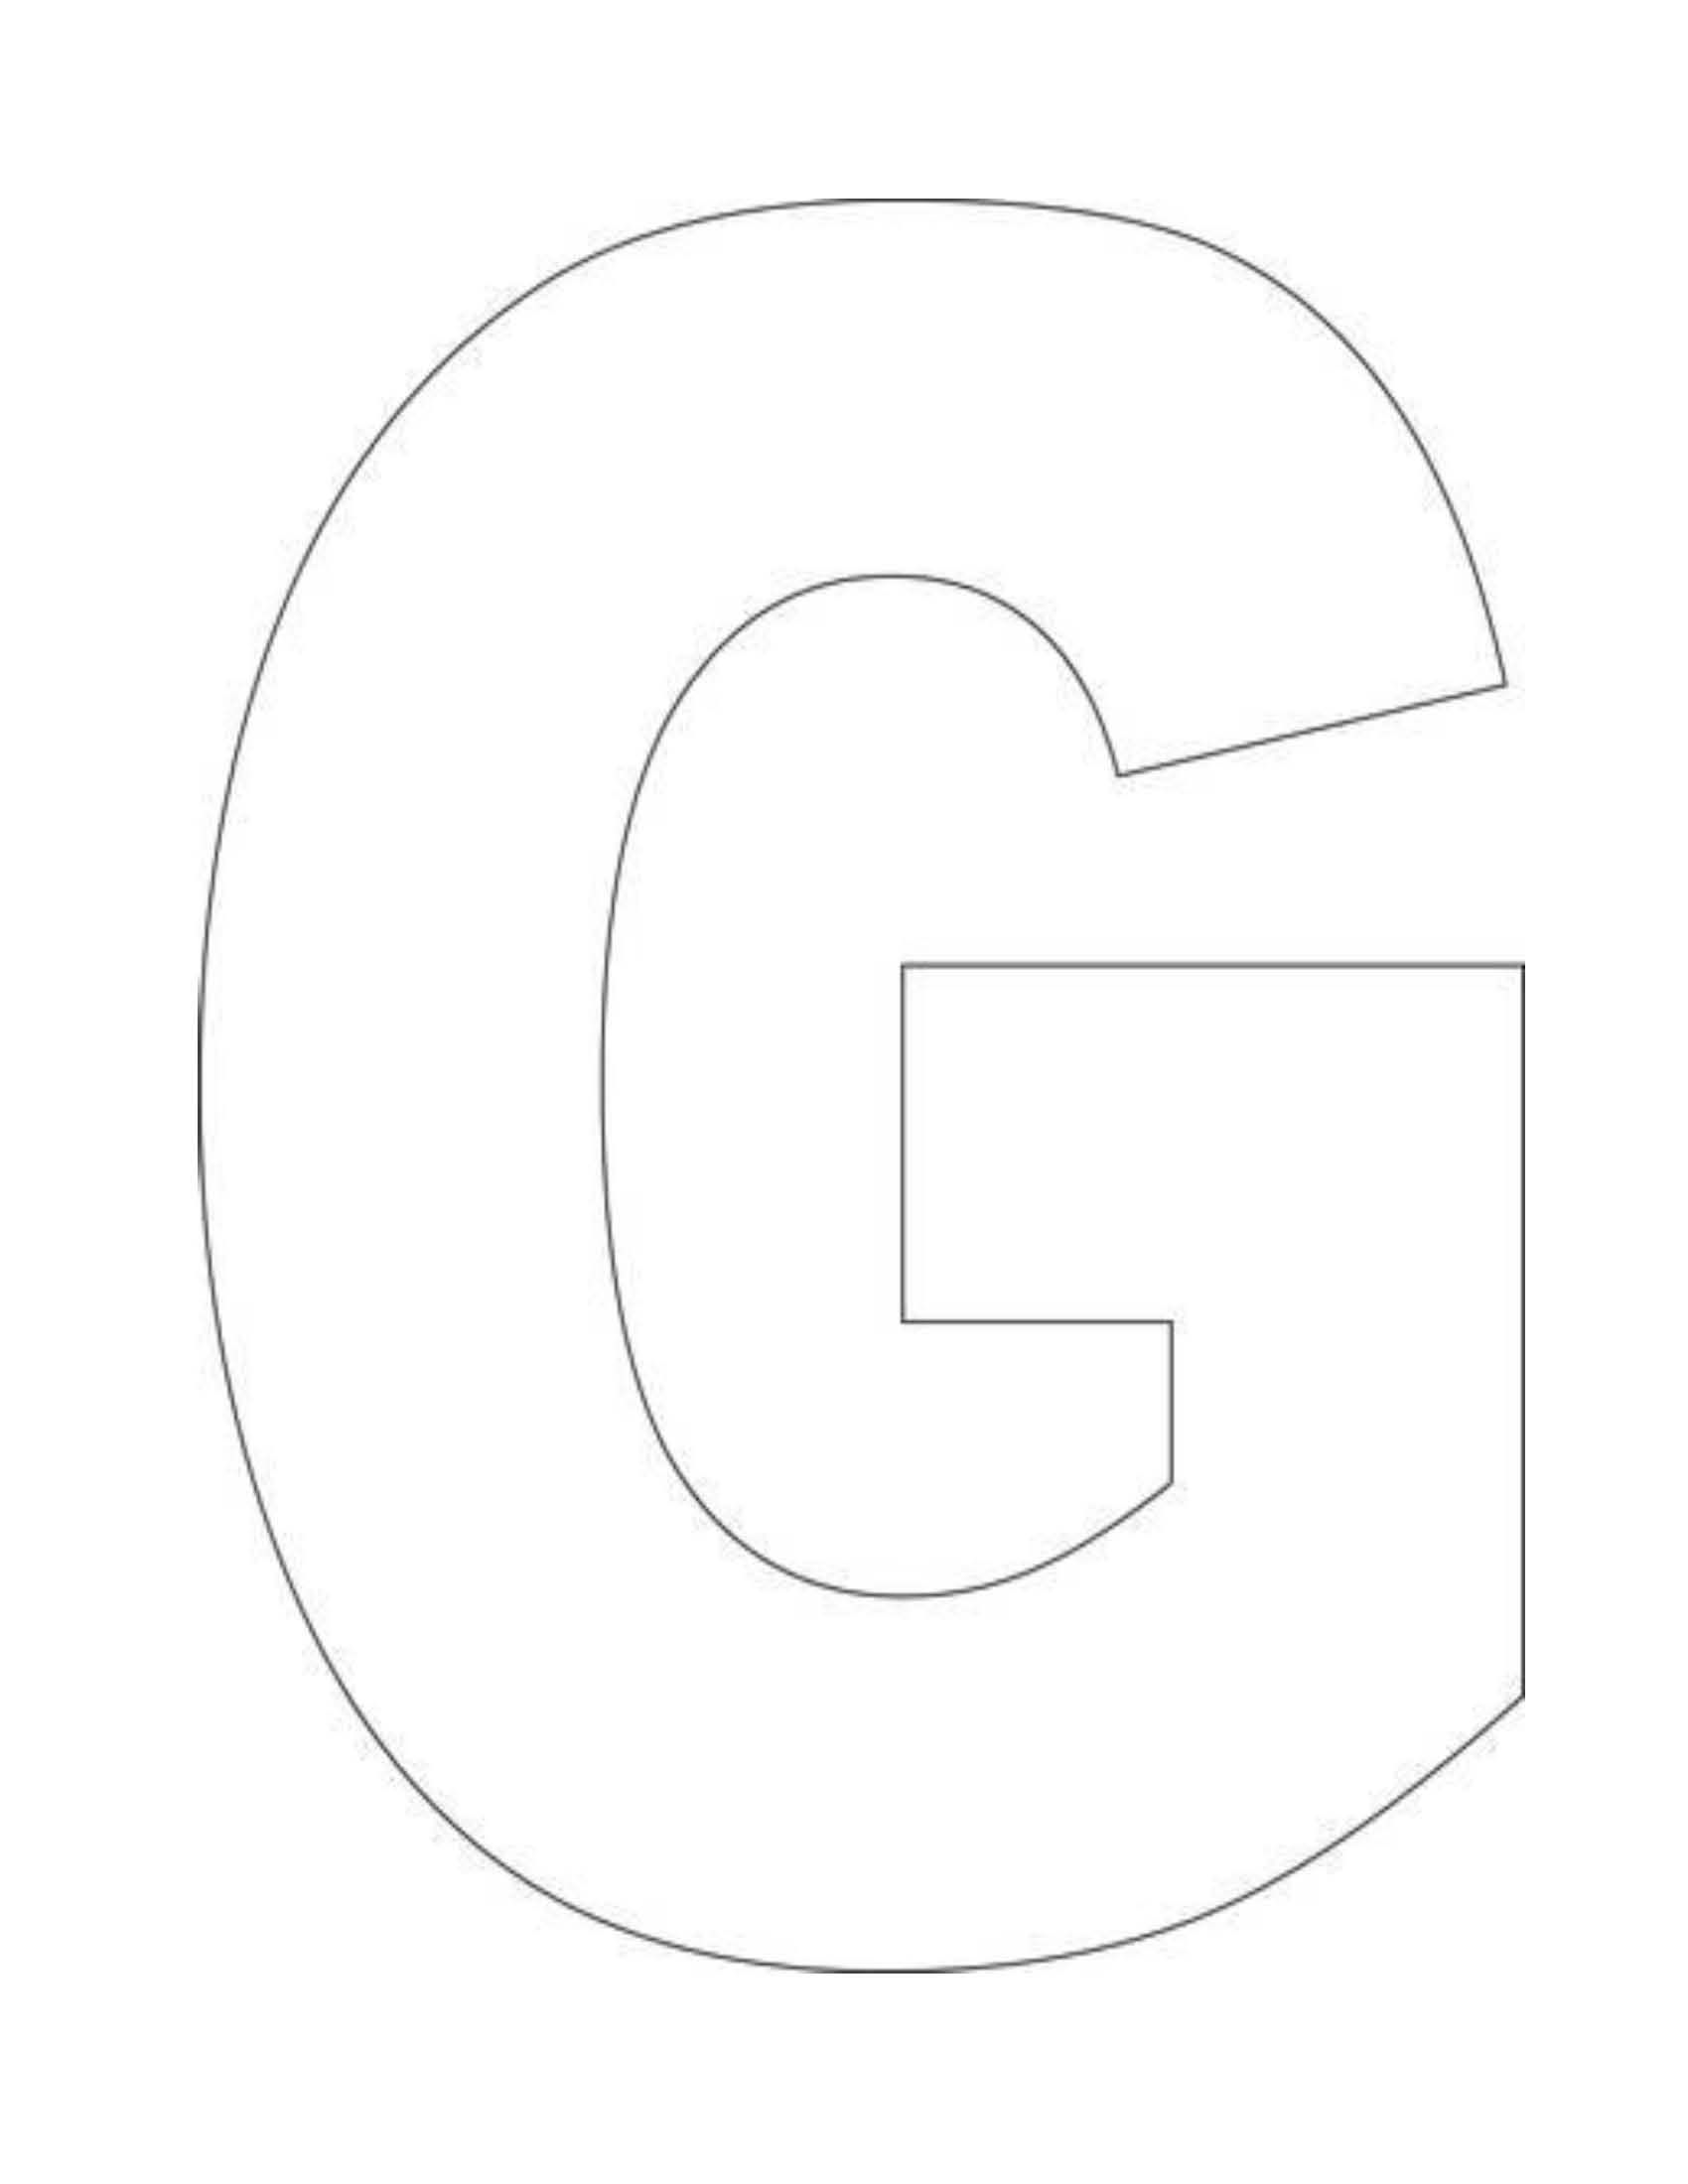 Alphabet G Coloring Pages Is Free Hd Wallpaper Alphabet G Coloring Pages Was Upload By Was On